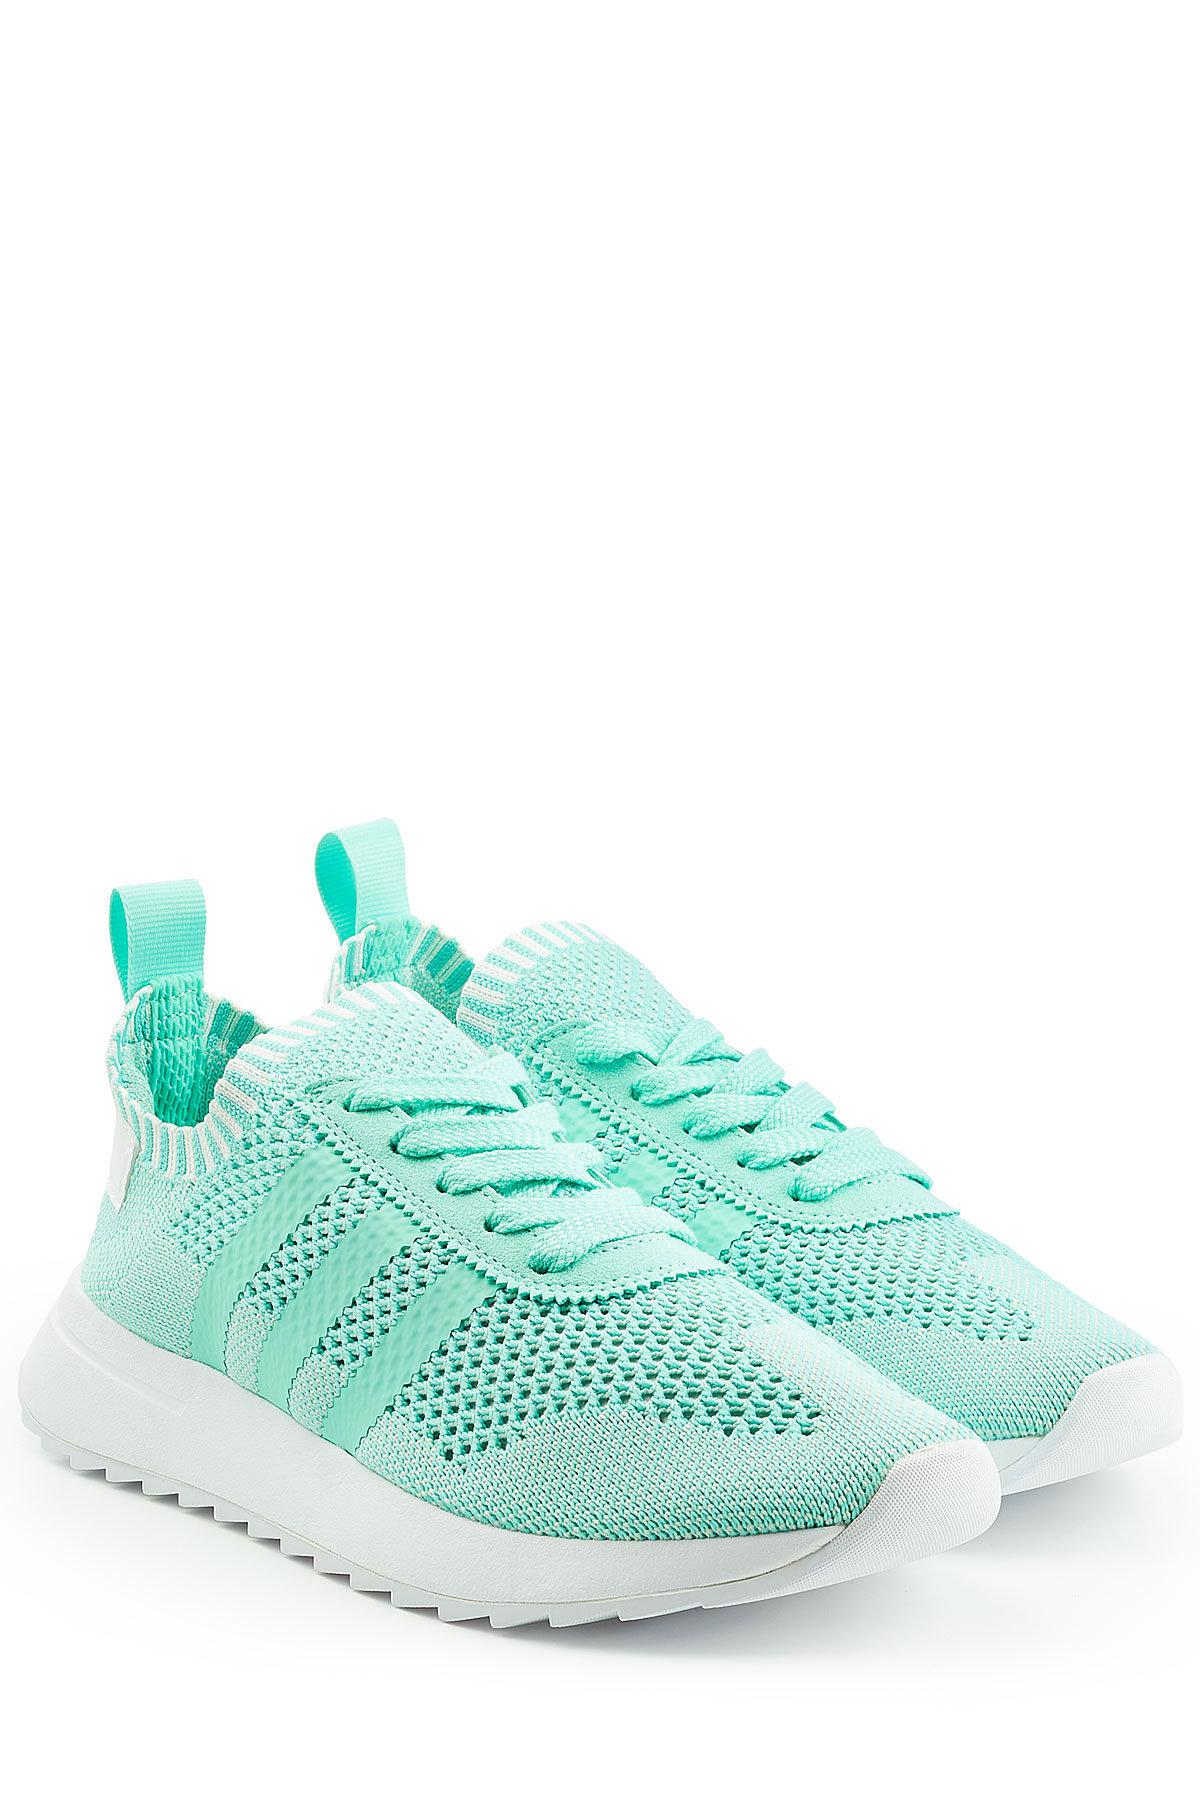 Adidas Originals Primeknit Flashback Sneakers in Green - Save ... aad525e95